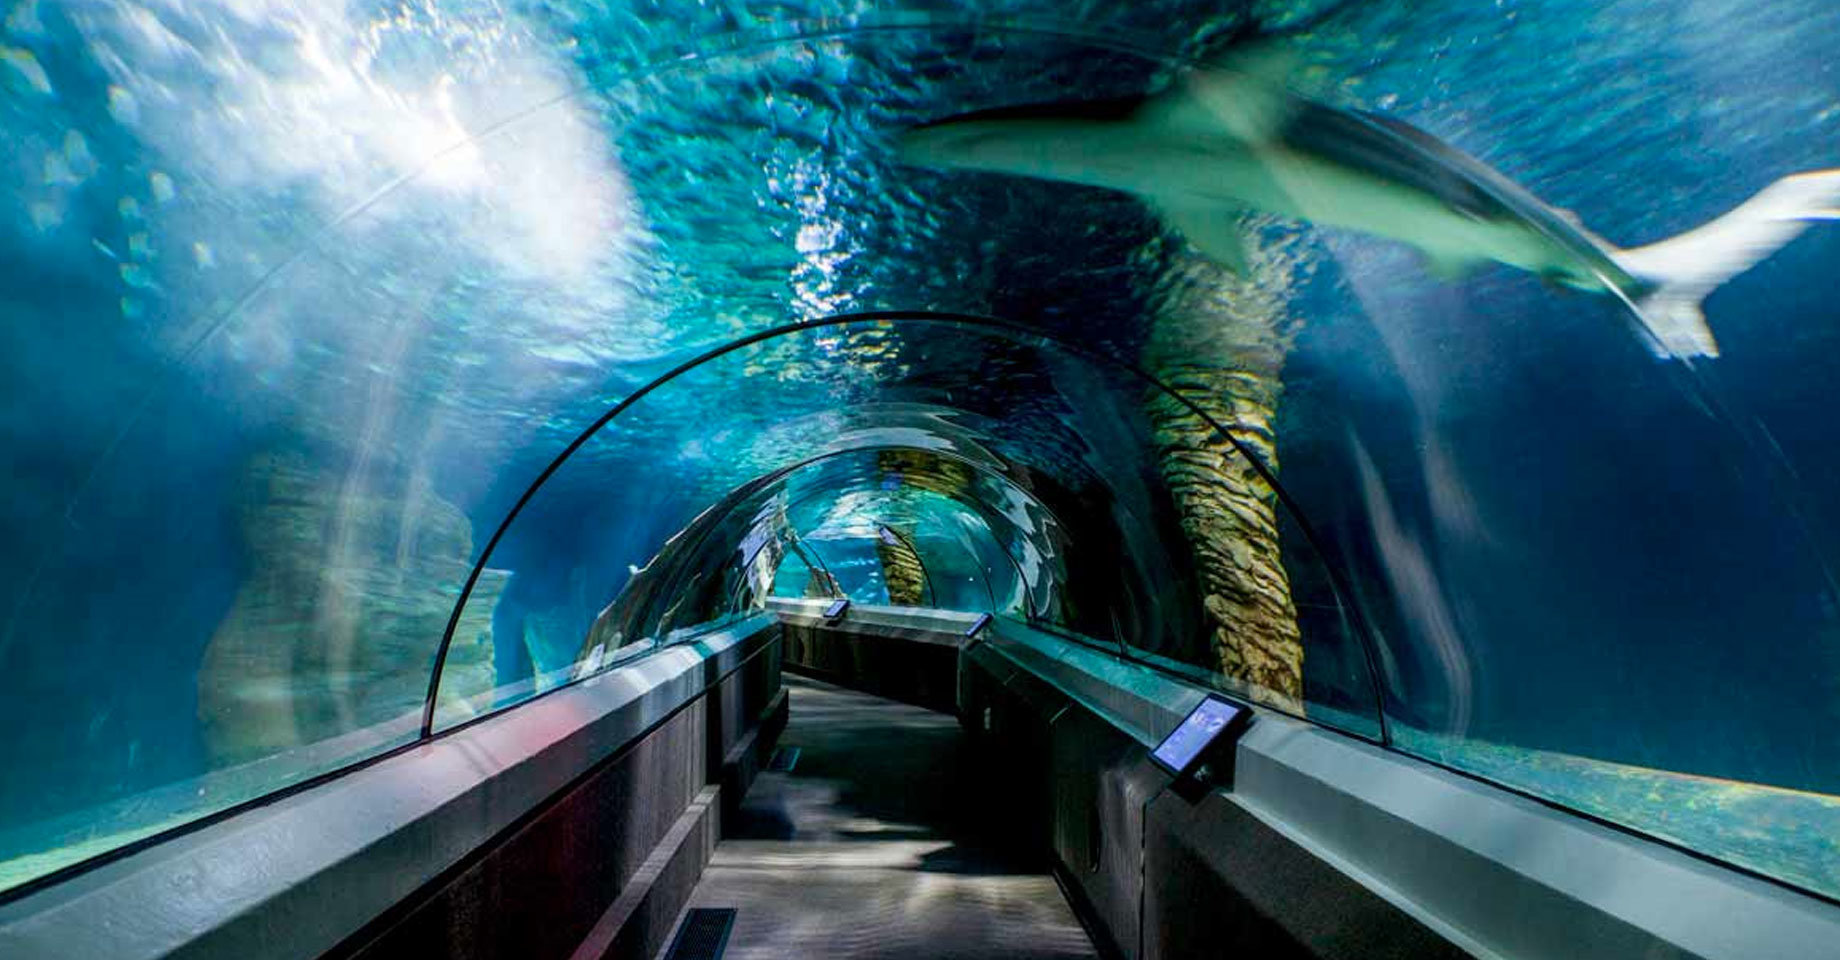 Underwater tunnel at SEA LIFE Mooloolaba